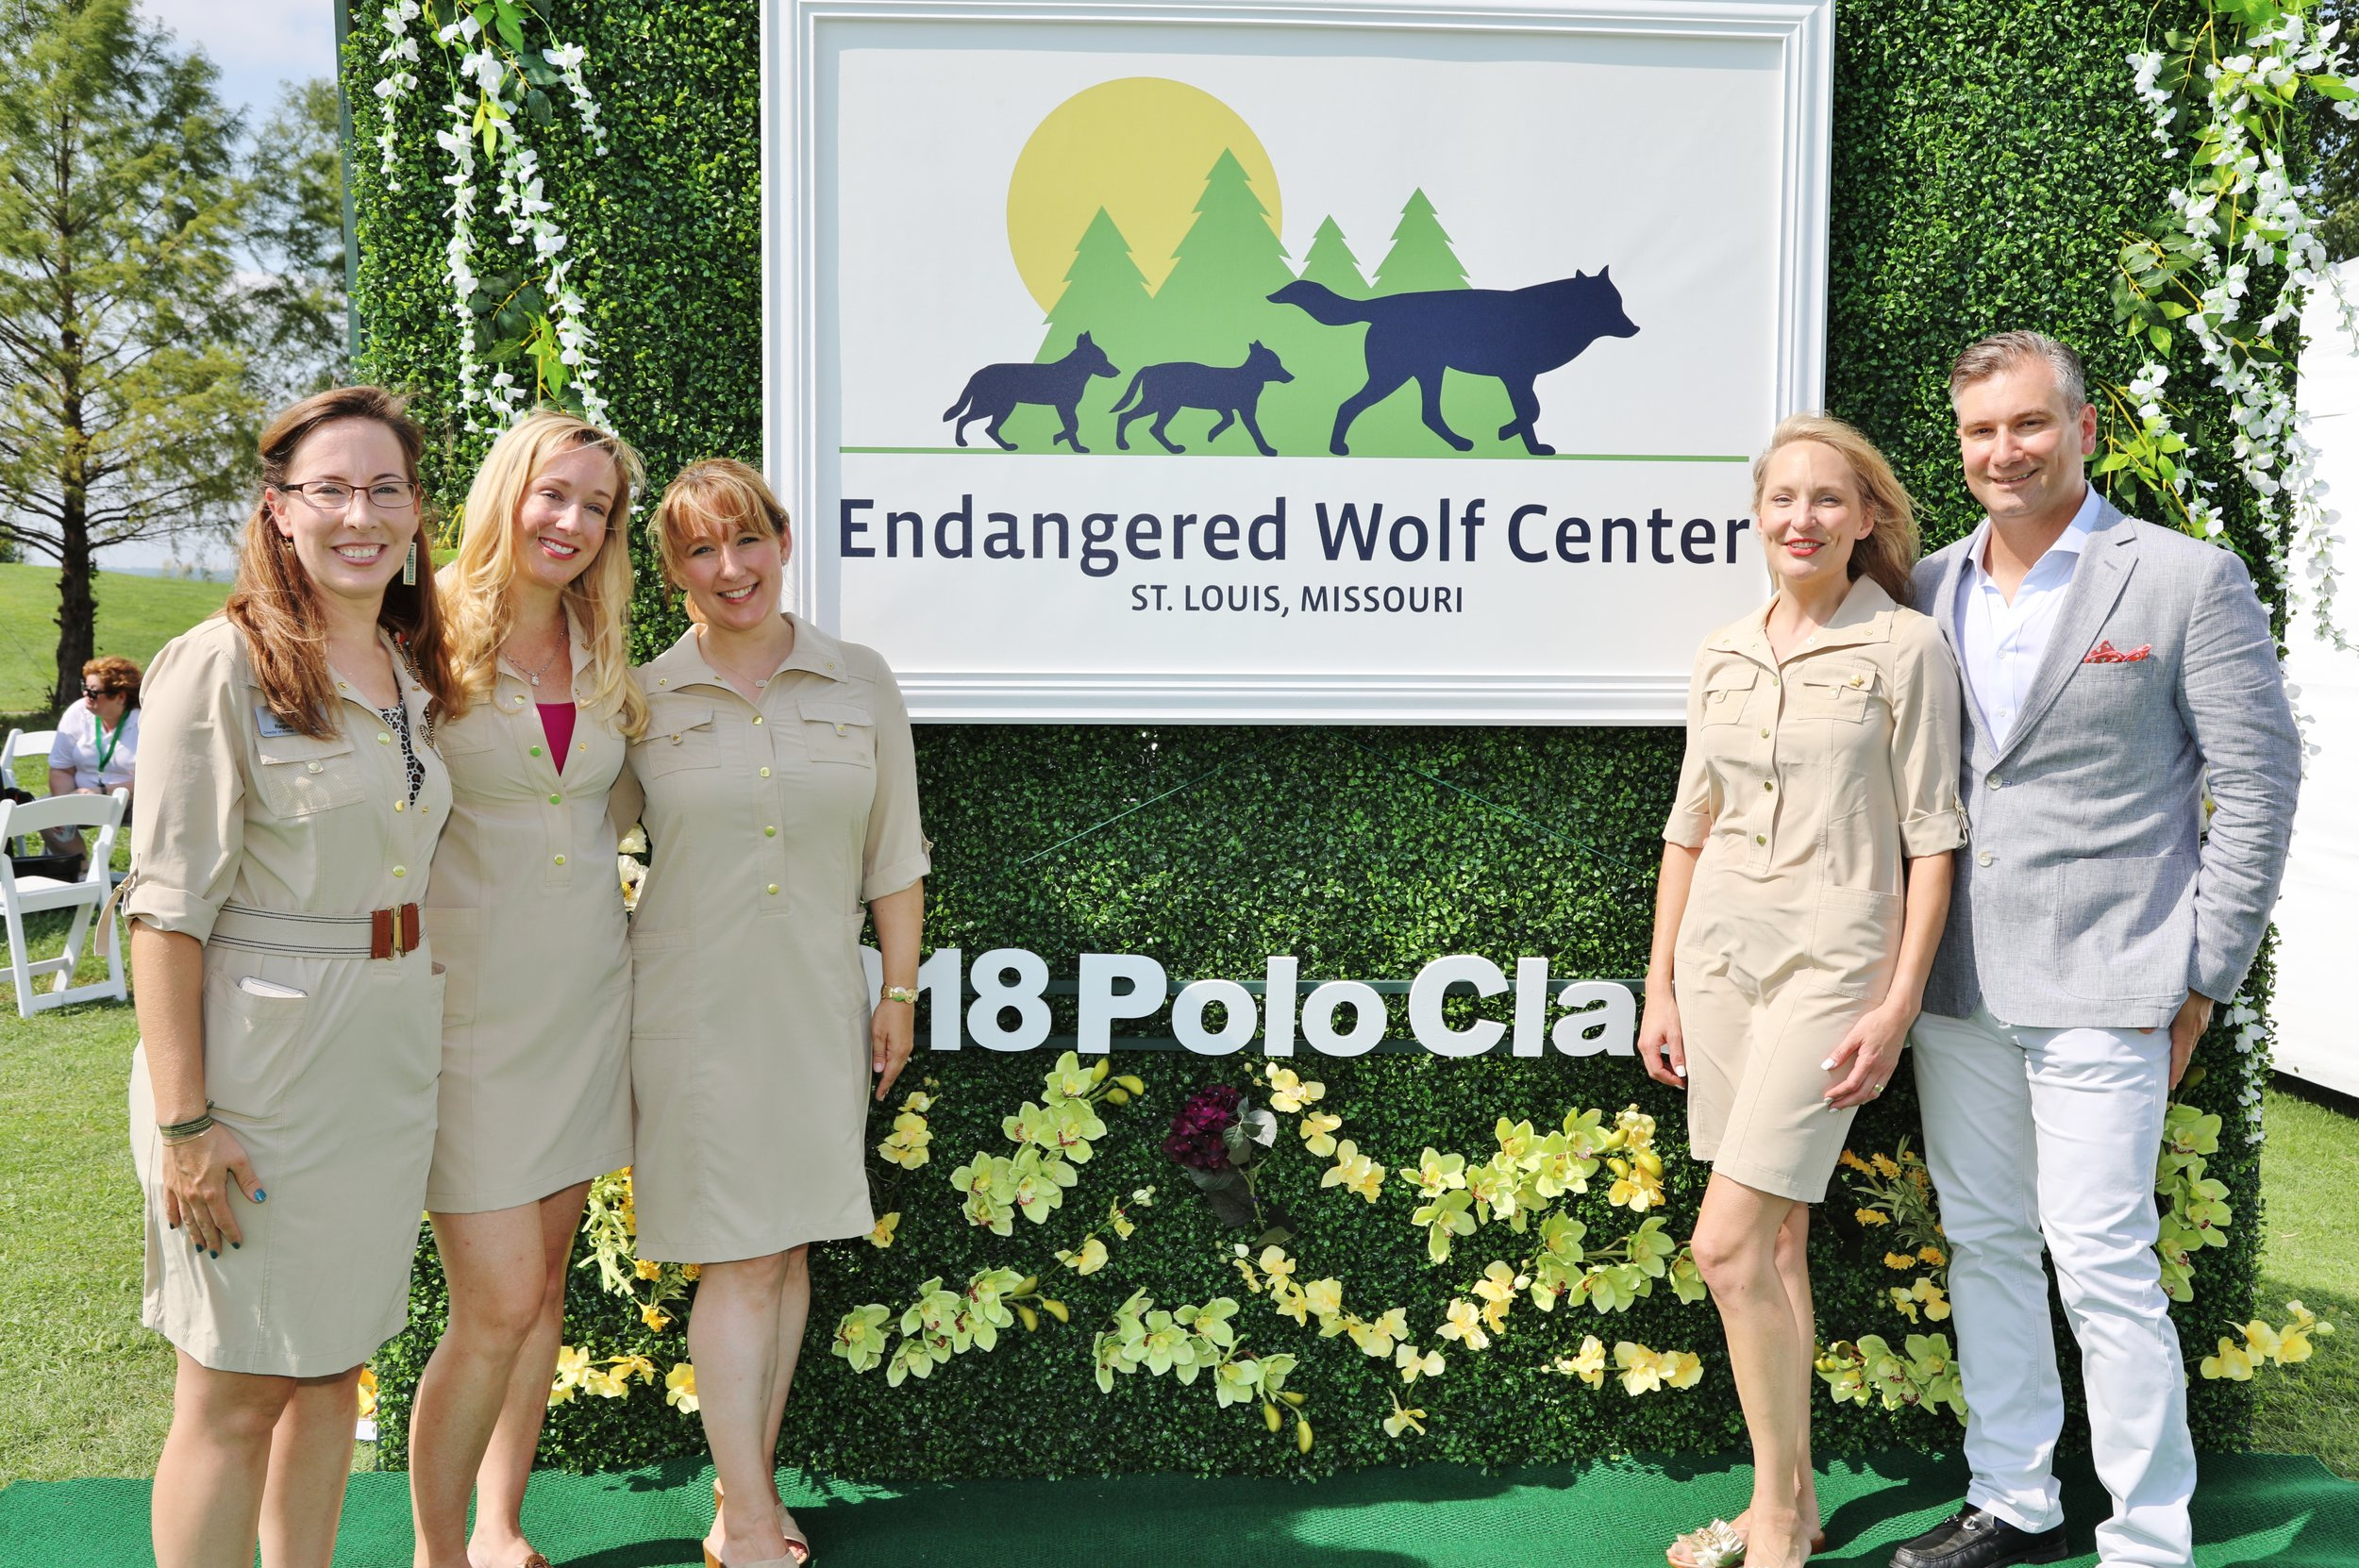 The 2019 Endangered Wolf Polo Classic has been rescheduled to September 19, 2019